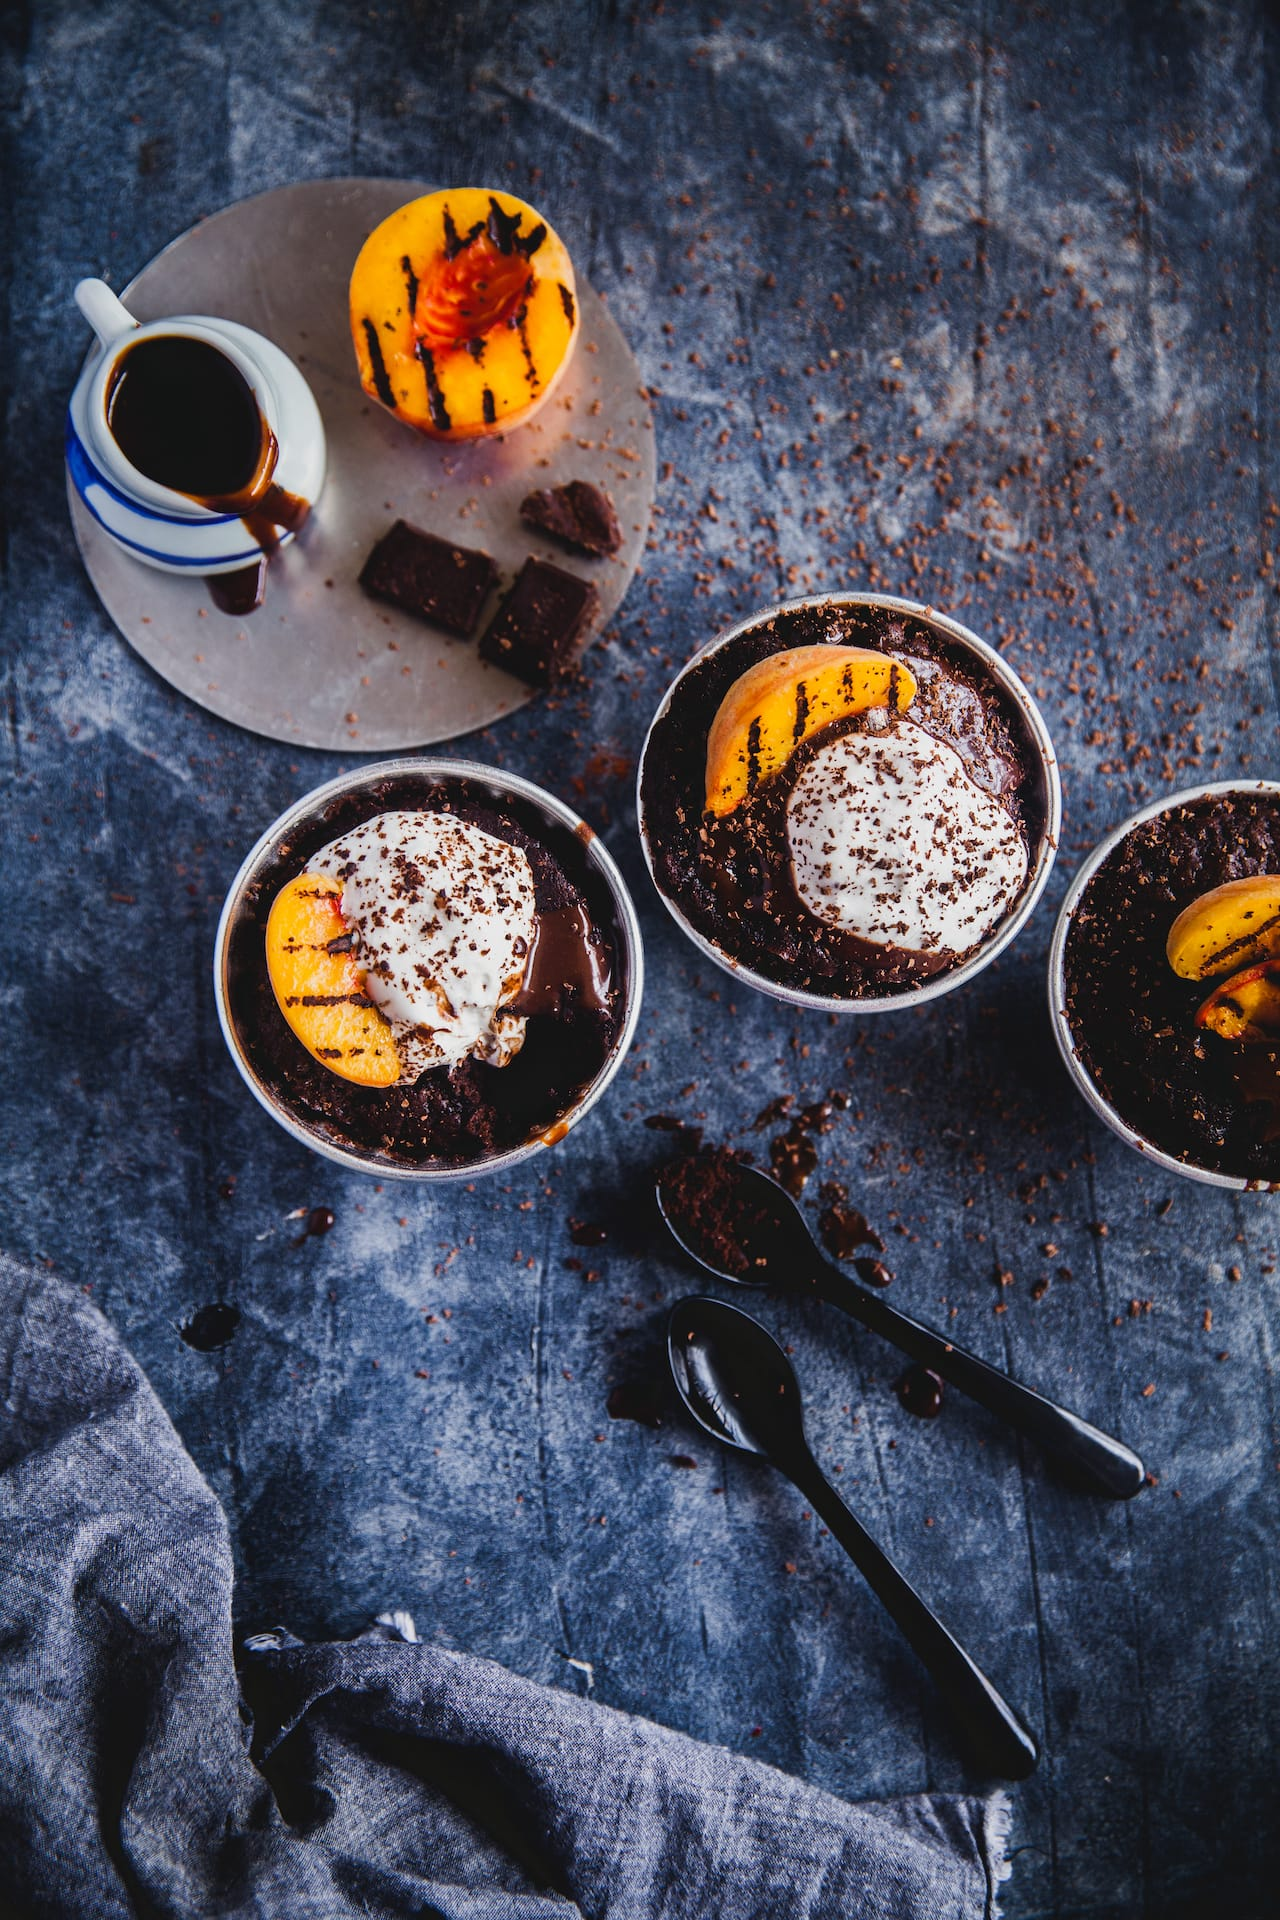 Chili Chocolate Pudding with Grilled Peaches | Playful Cooking